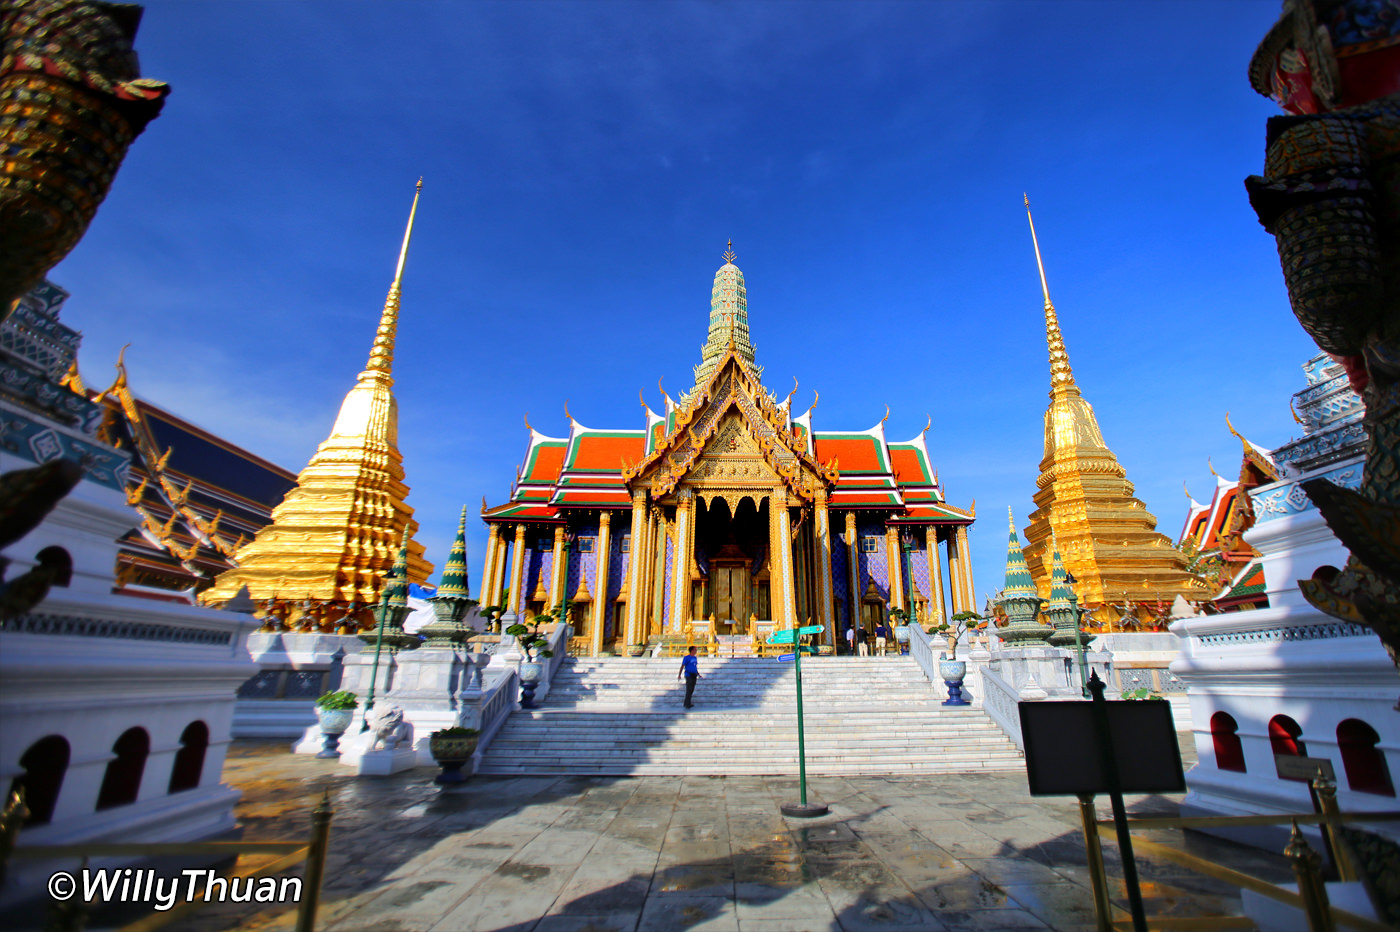 Bangkok Grand Palace and Wat Phra Kaew